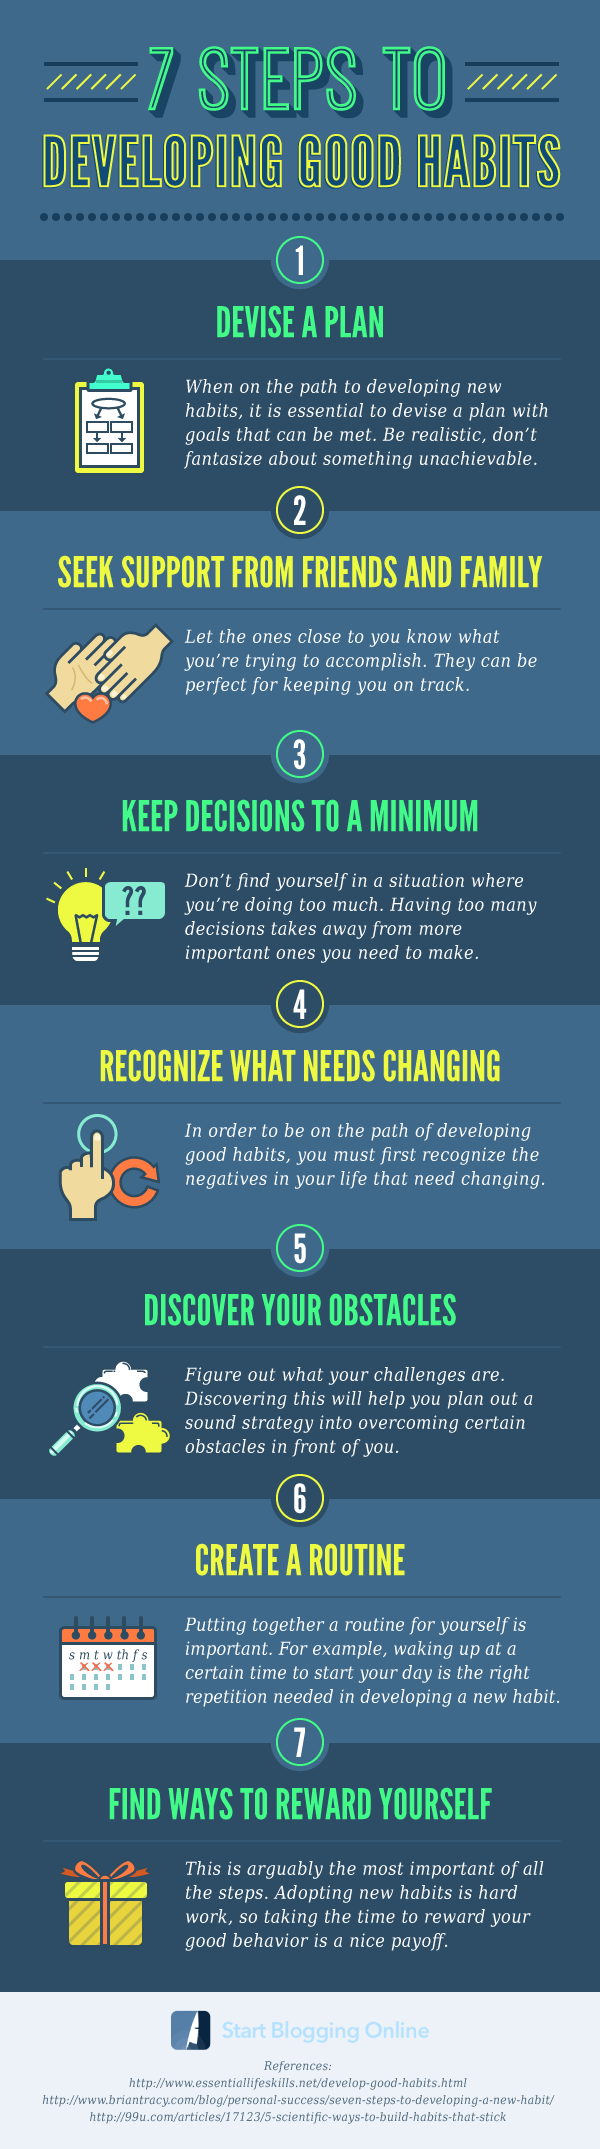 7-steps-to-developing-good-habits.png